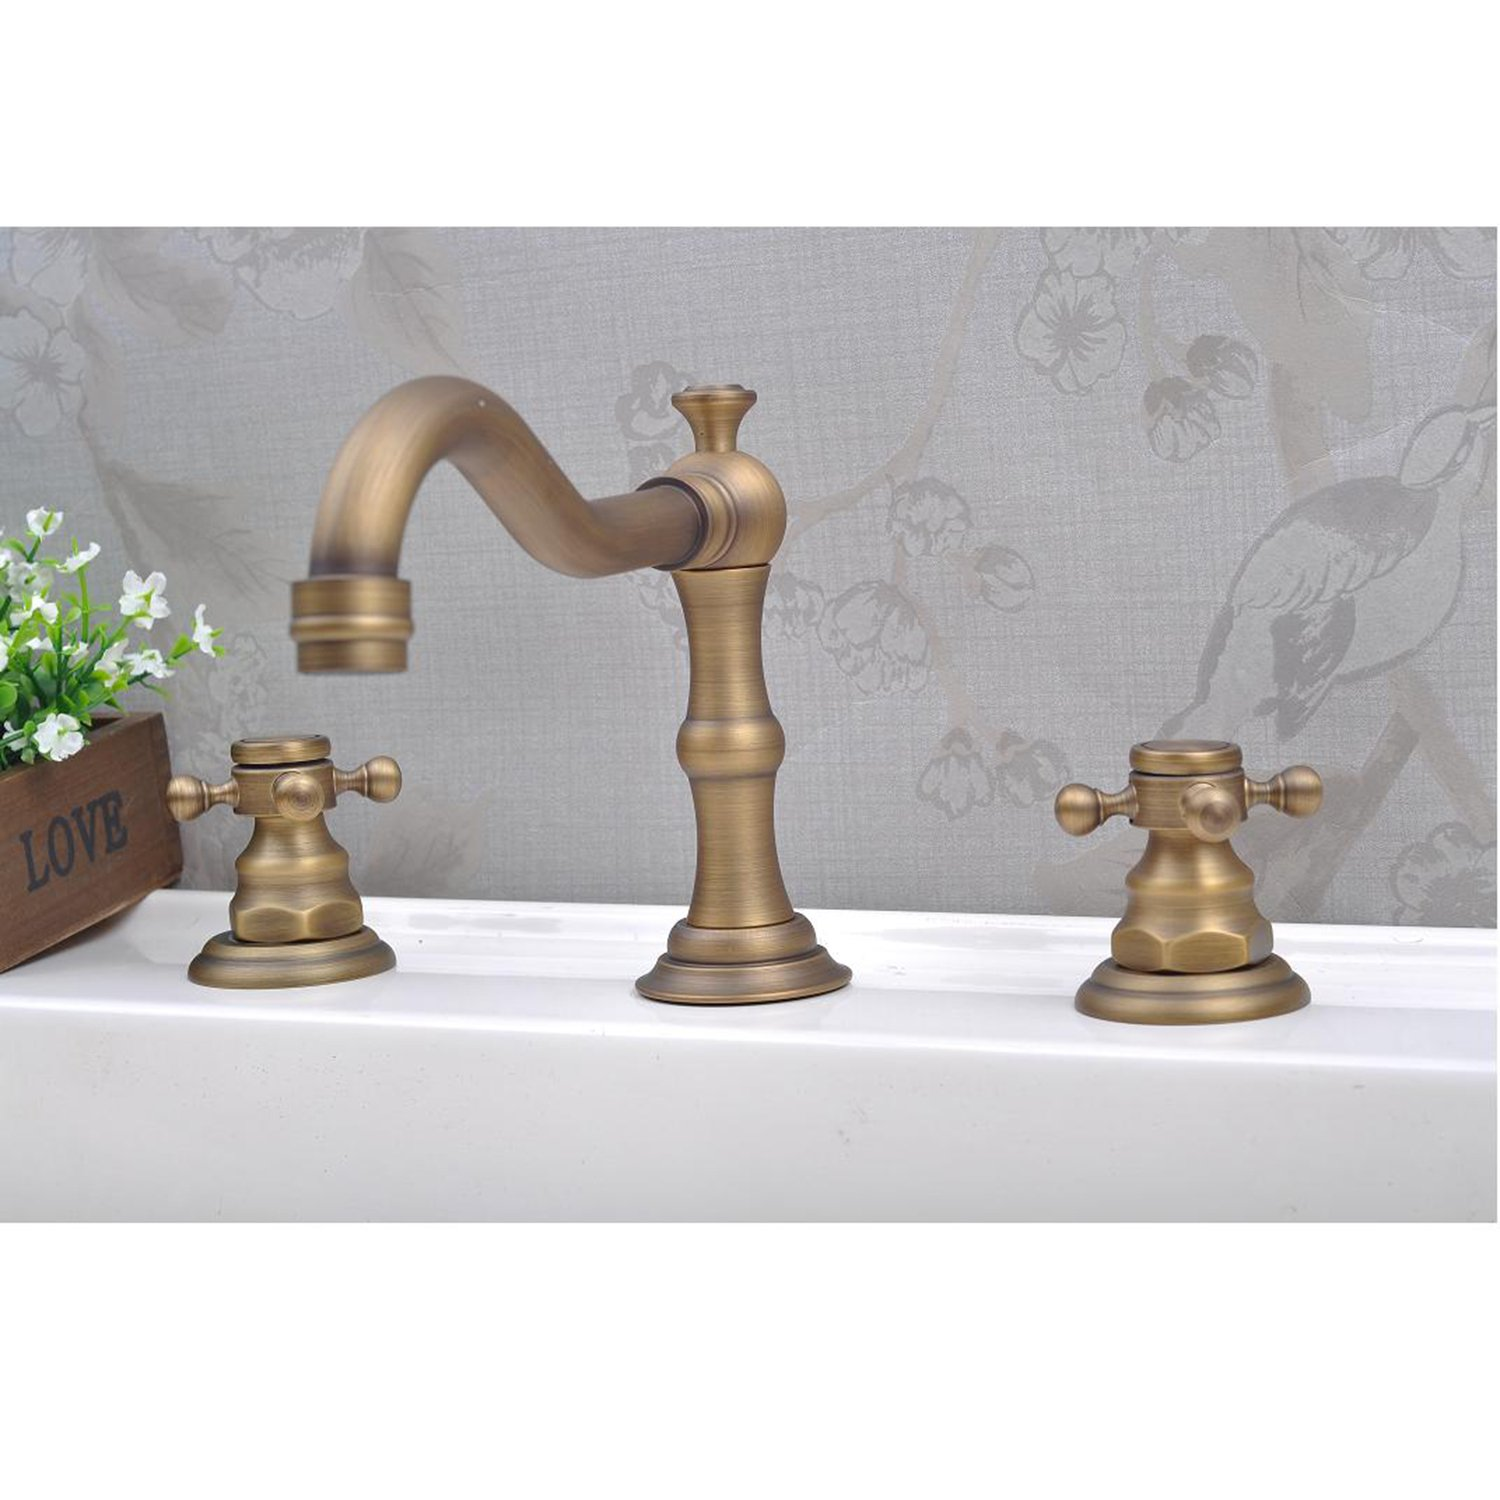 Lightinthebox® Deck Mount Contemporary Antique Inspired Solid Brass Finish Bathroom Sink Faucet Bathtub Mixer Taps Roman Tub Faucets Bath Shower Single Hole Lavatory Plumbing Fixtures Roman Tub Faucets Ceramic Valve Included Glacier Bay